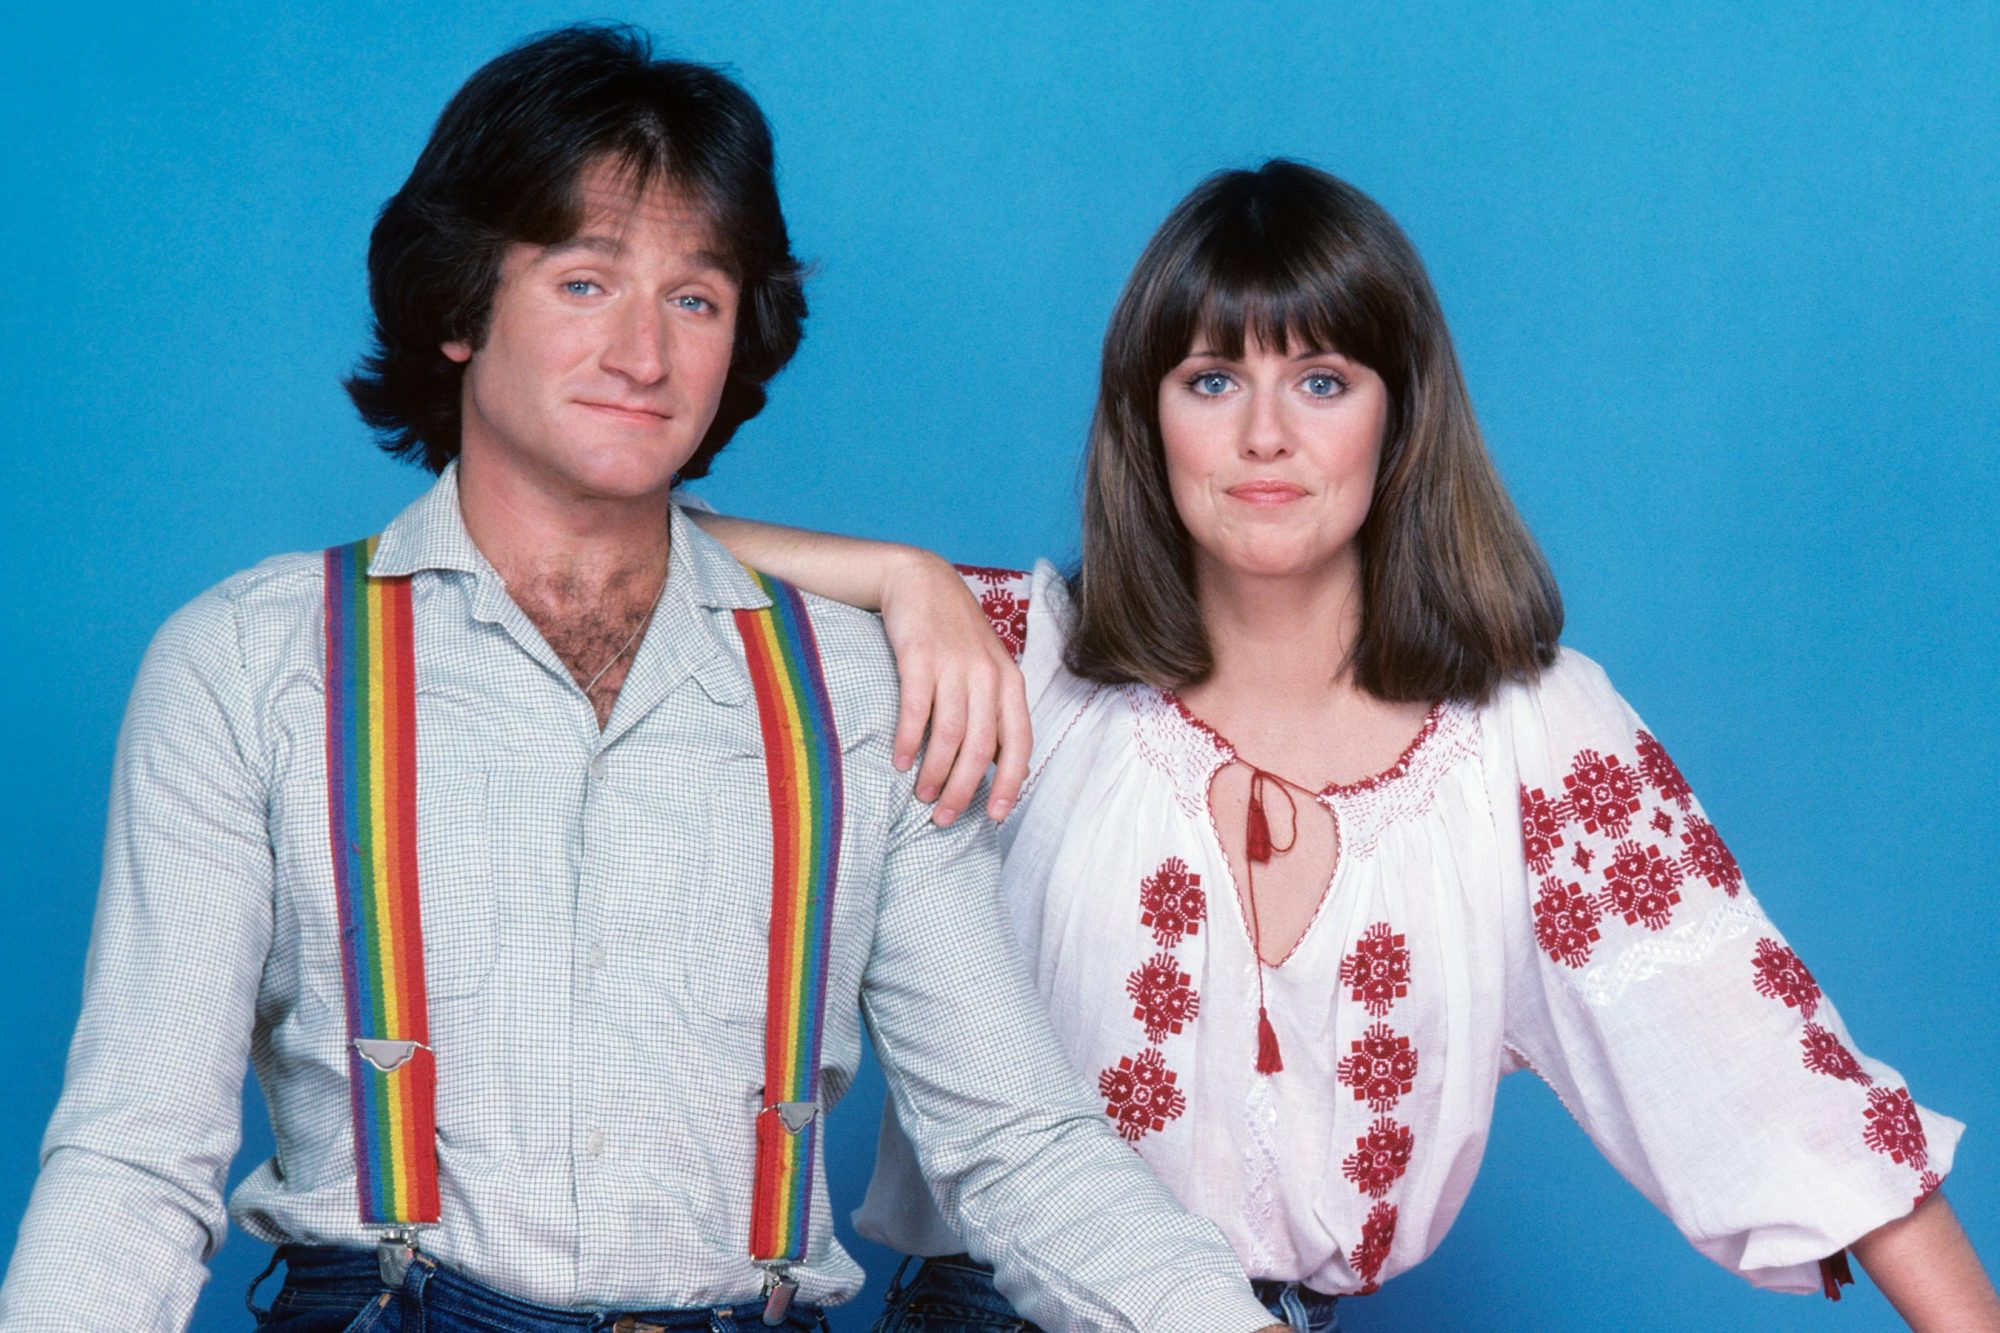 Robin Williams alleged to have groped 'Mork & Mindy' costar Pam Dawber on  set | EW.com